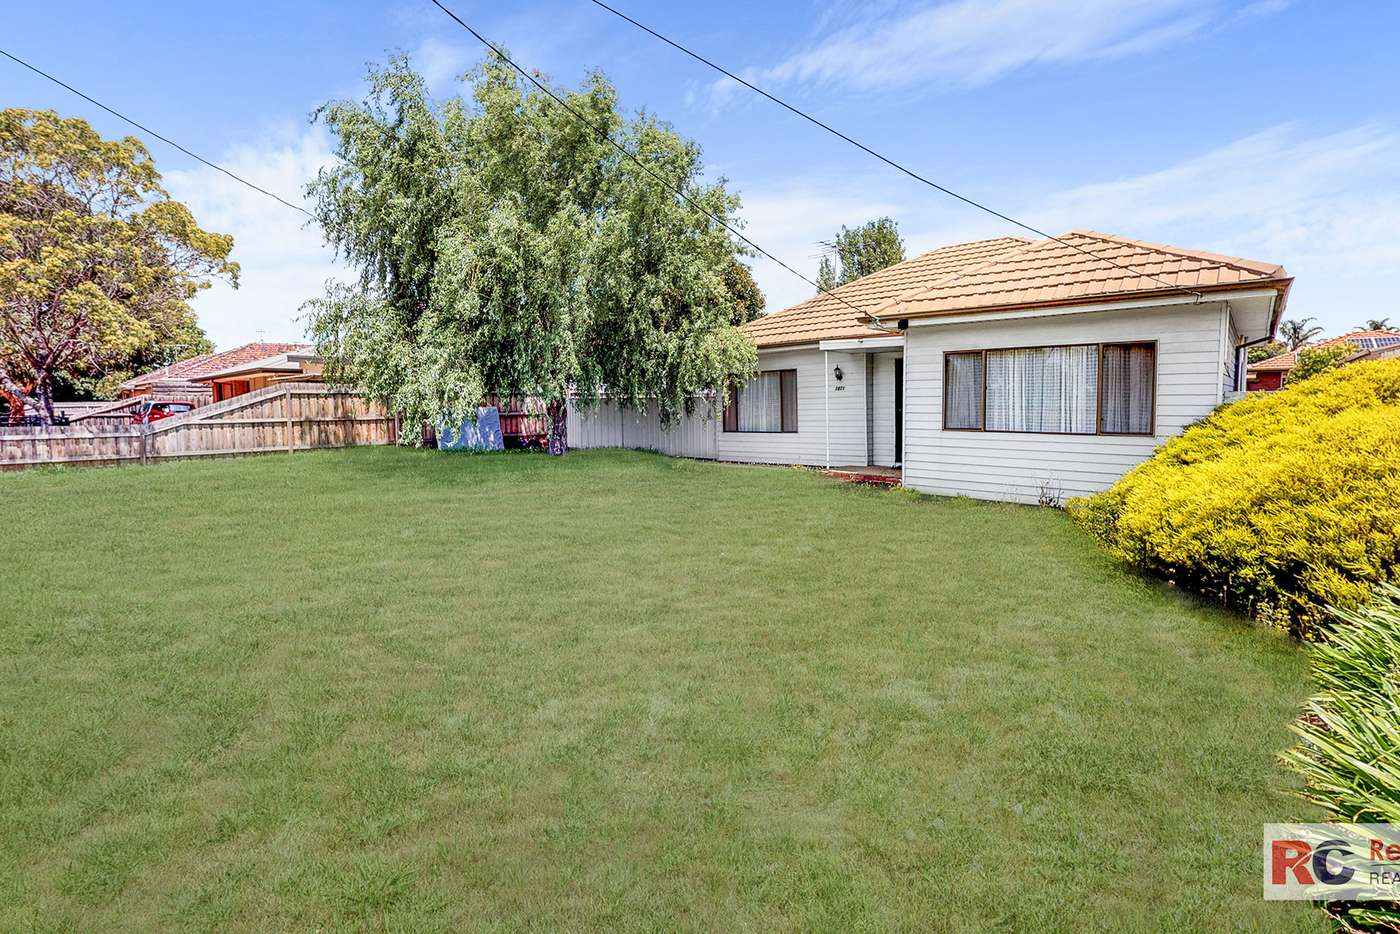 Sixth view of Homely house listing, 1071 and 1073 High Street, Reservoir VIC 3073